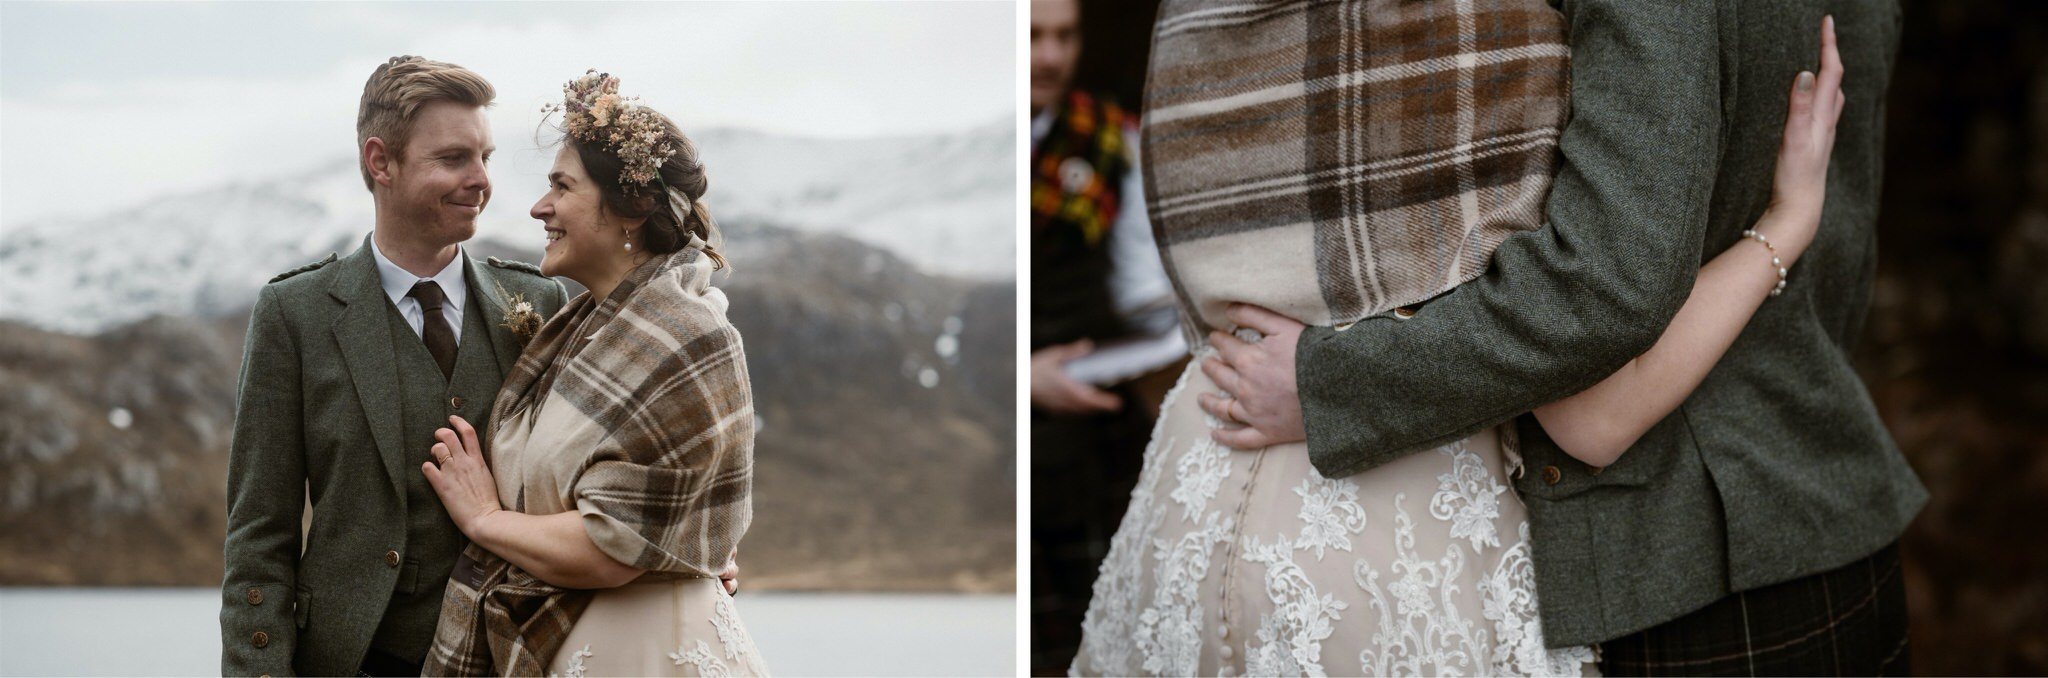 Bride and groom embrace after their Scotland elopement in Assynt